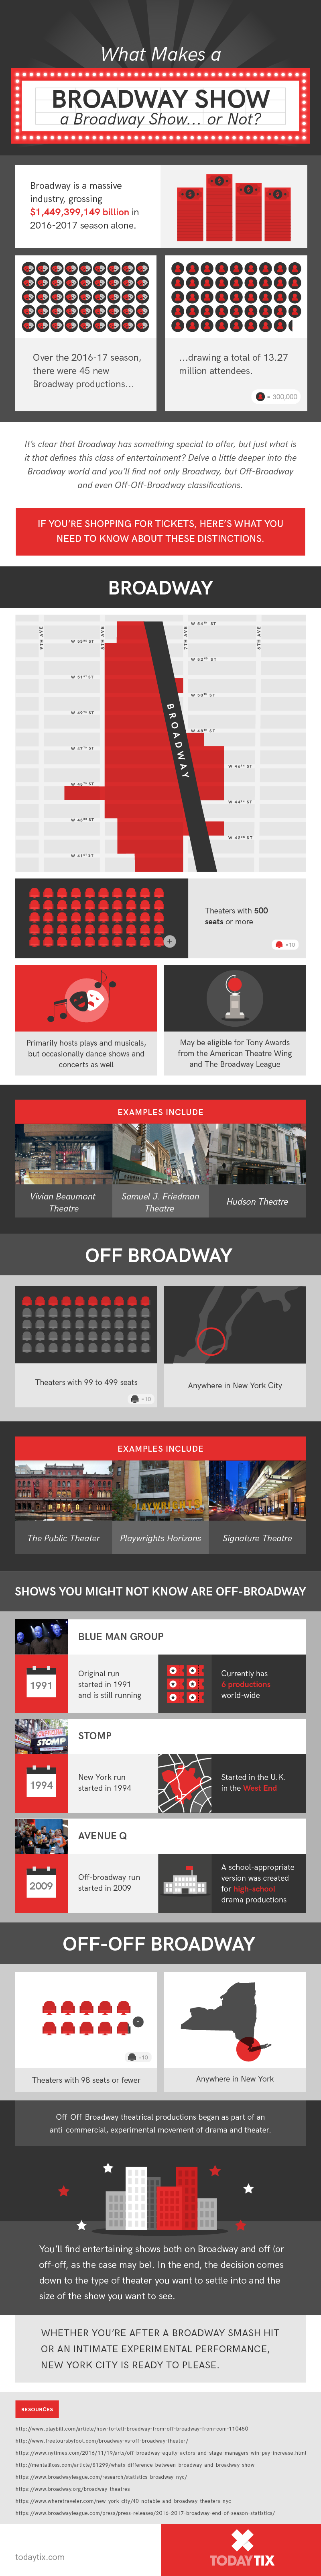 difference between West End and Broadway for new theatre-goers